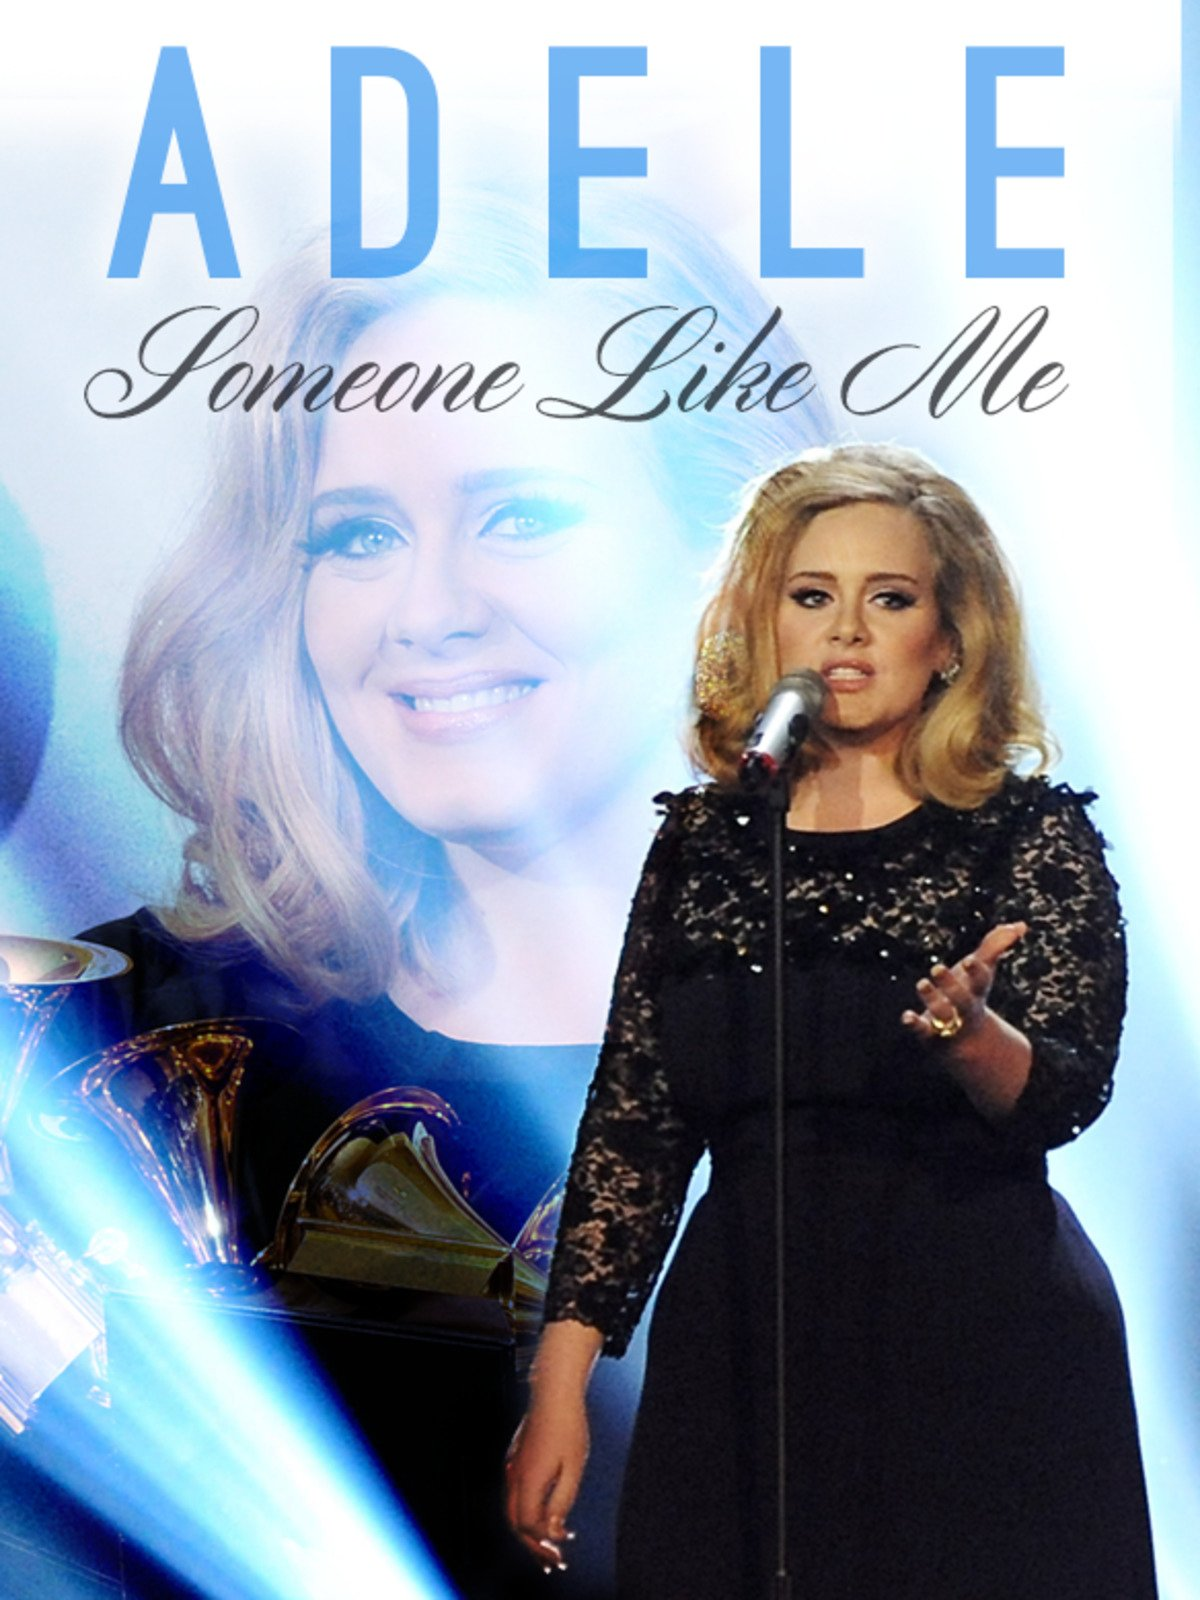 Adele: Someone Like Me